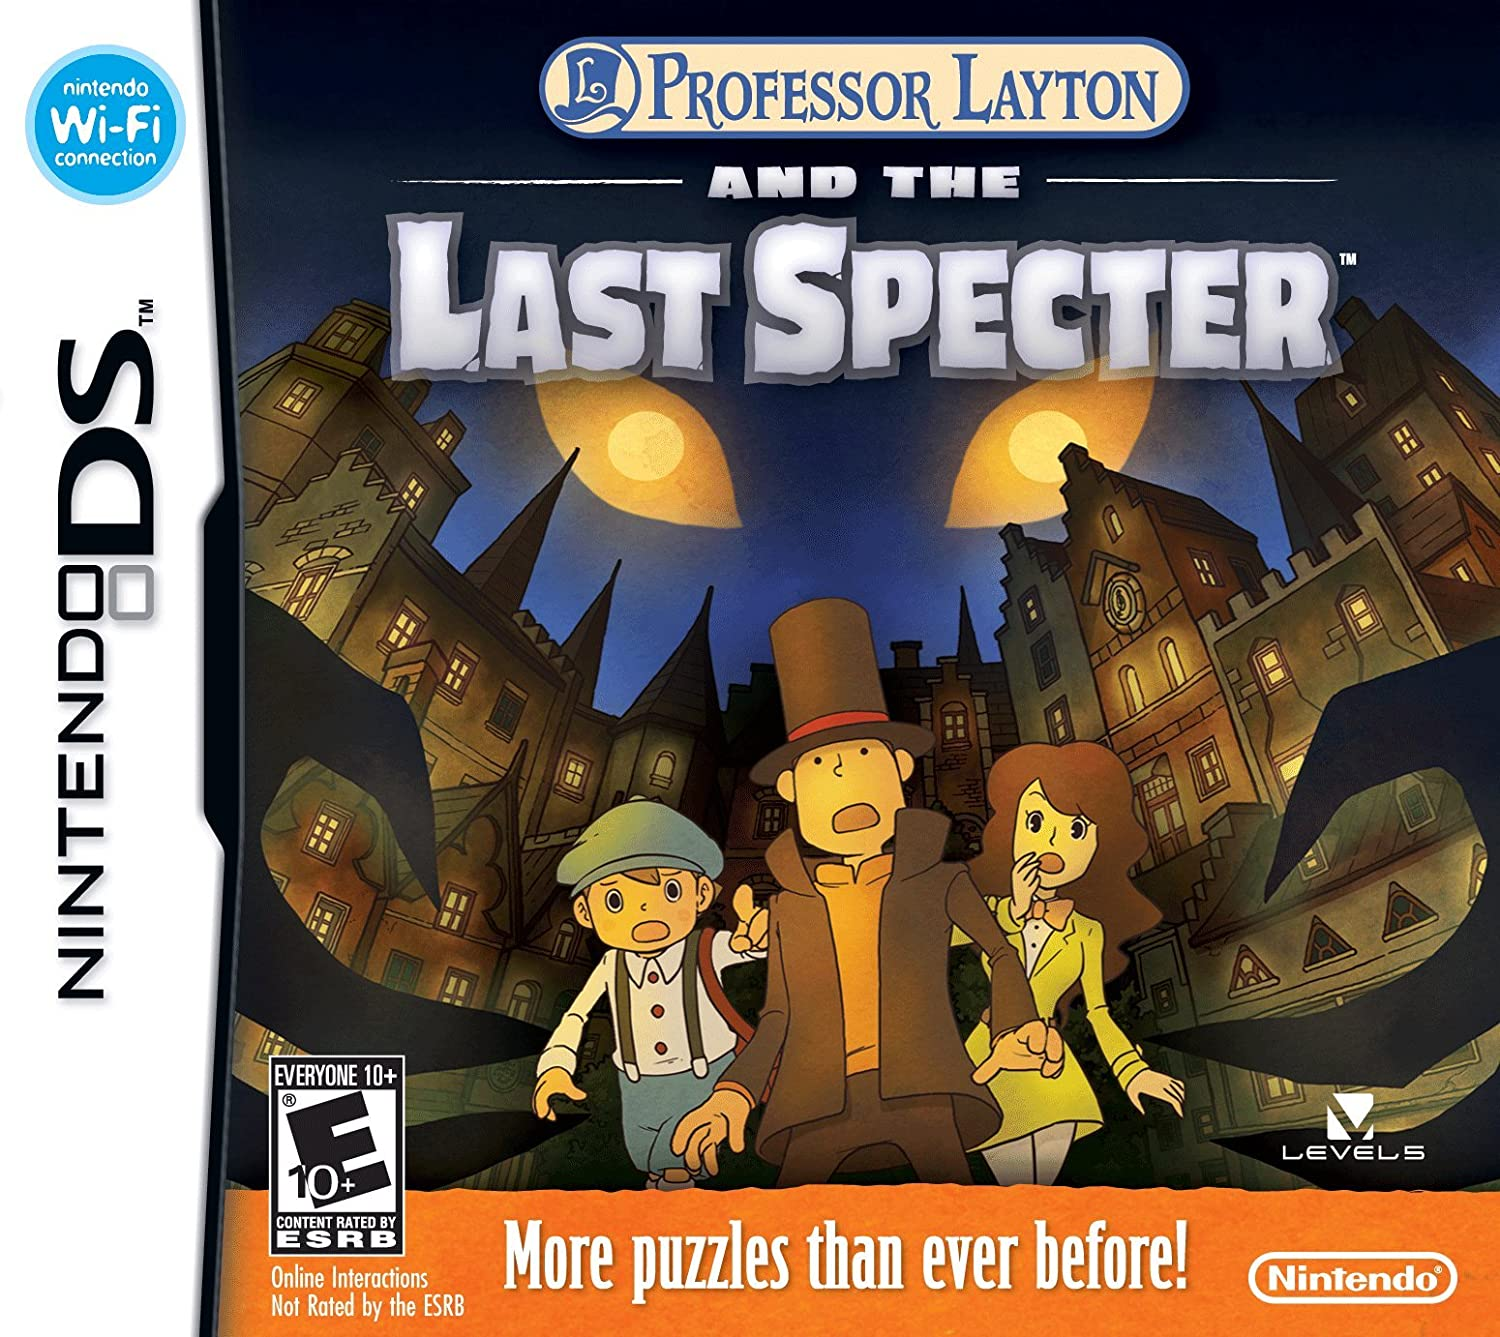 Professor Layton and the Animer Los Angeles Mall price revision Last Nintendo Specter - DS